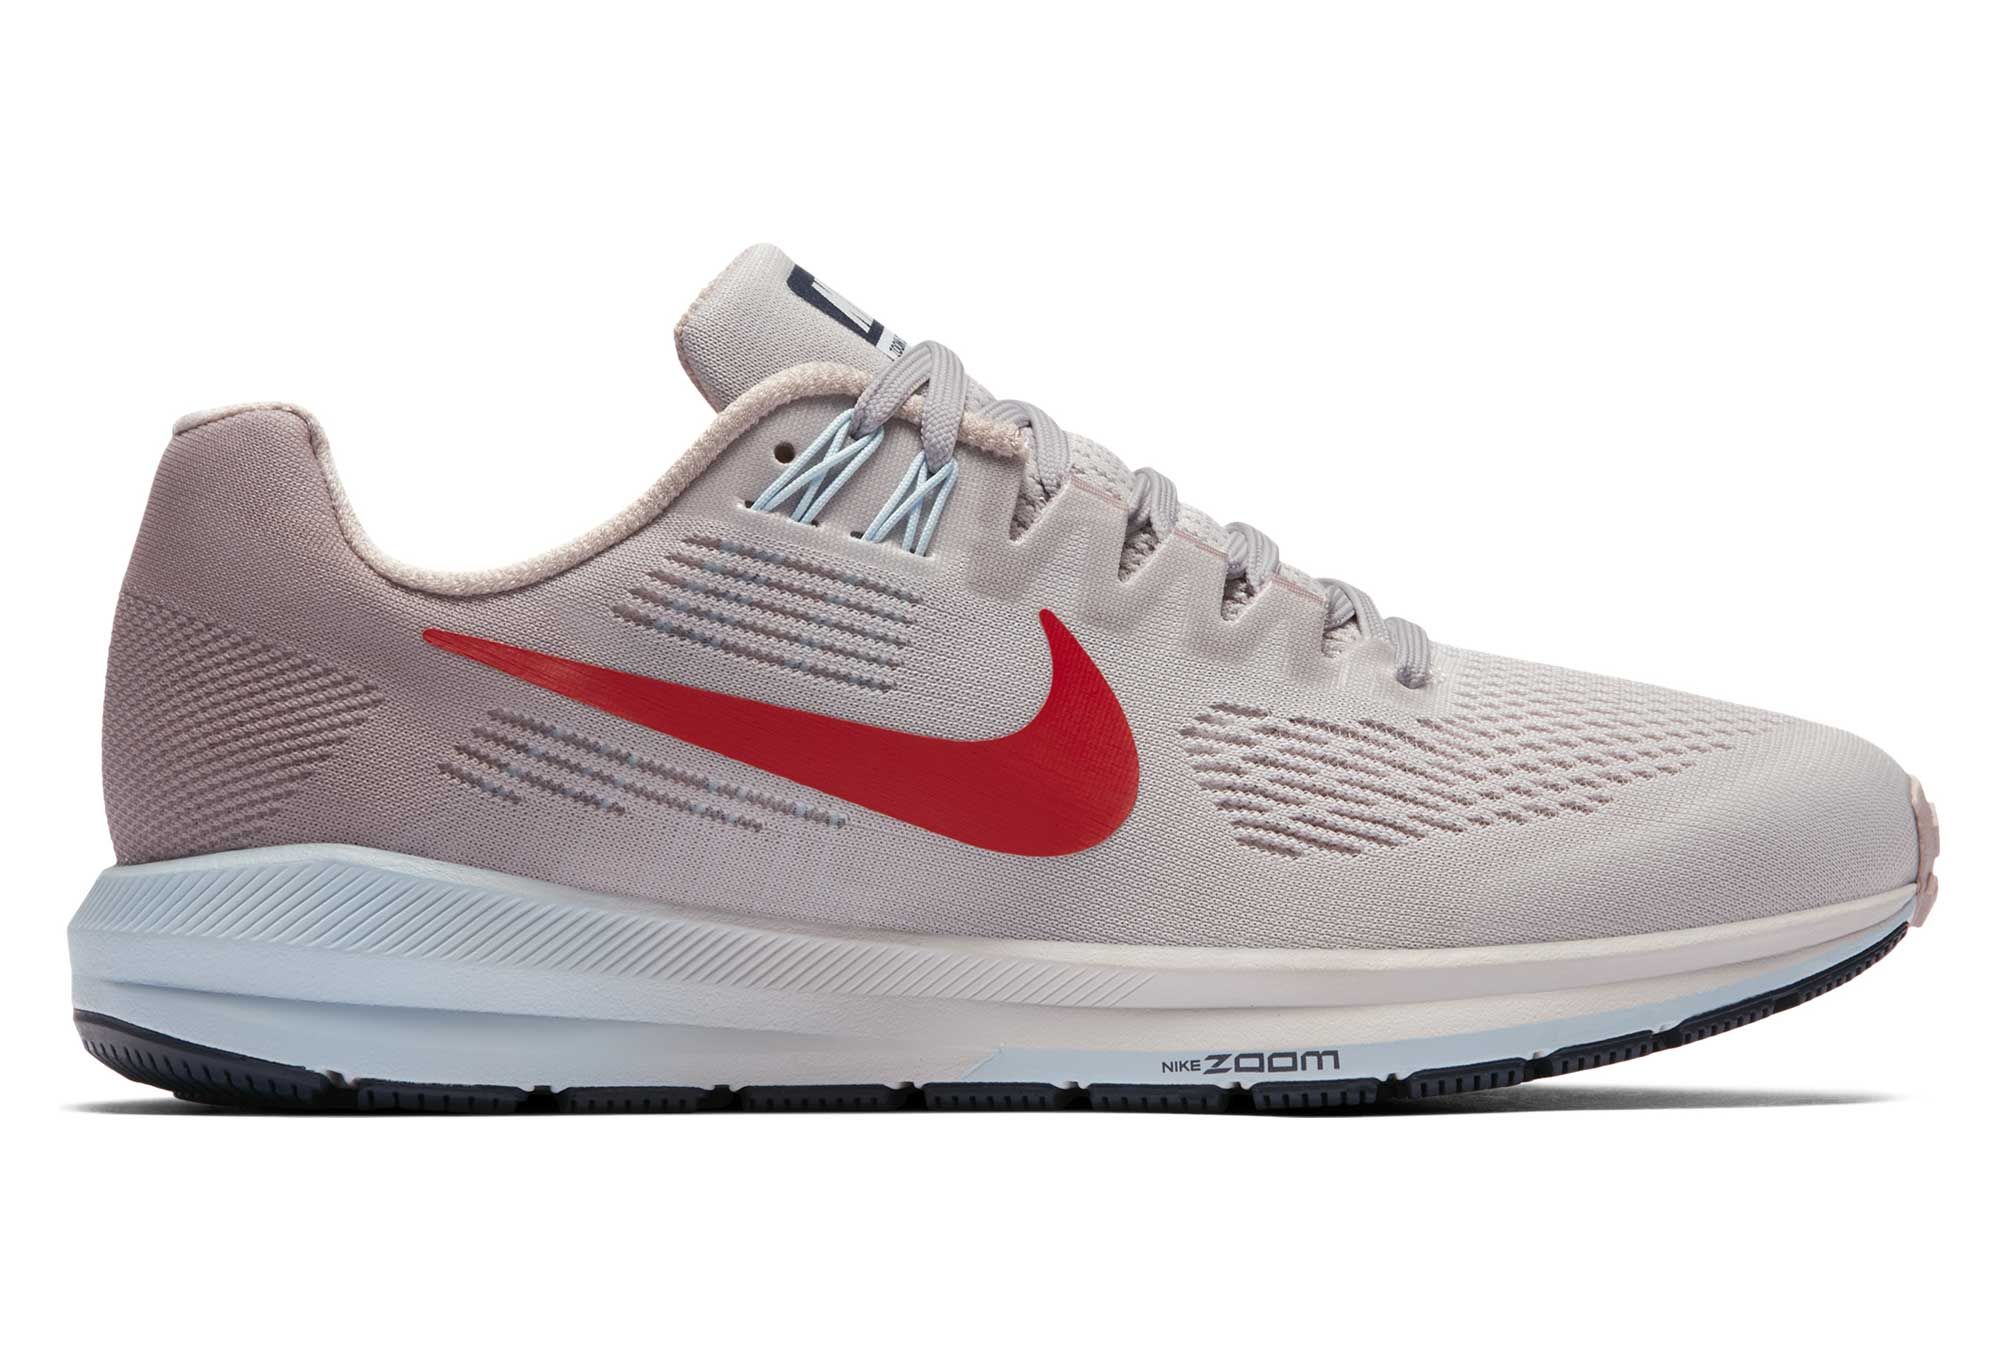 brand new 322b3 447ca Chaussures de Running Femme Nike Air Zoom Structure 21 Gris   Rouge